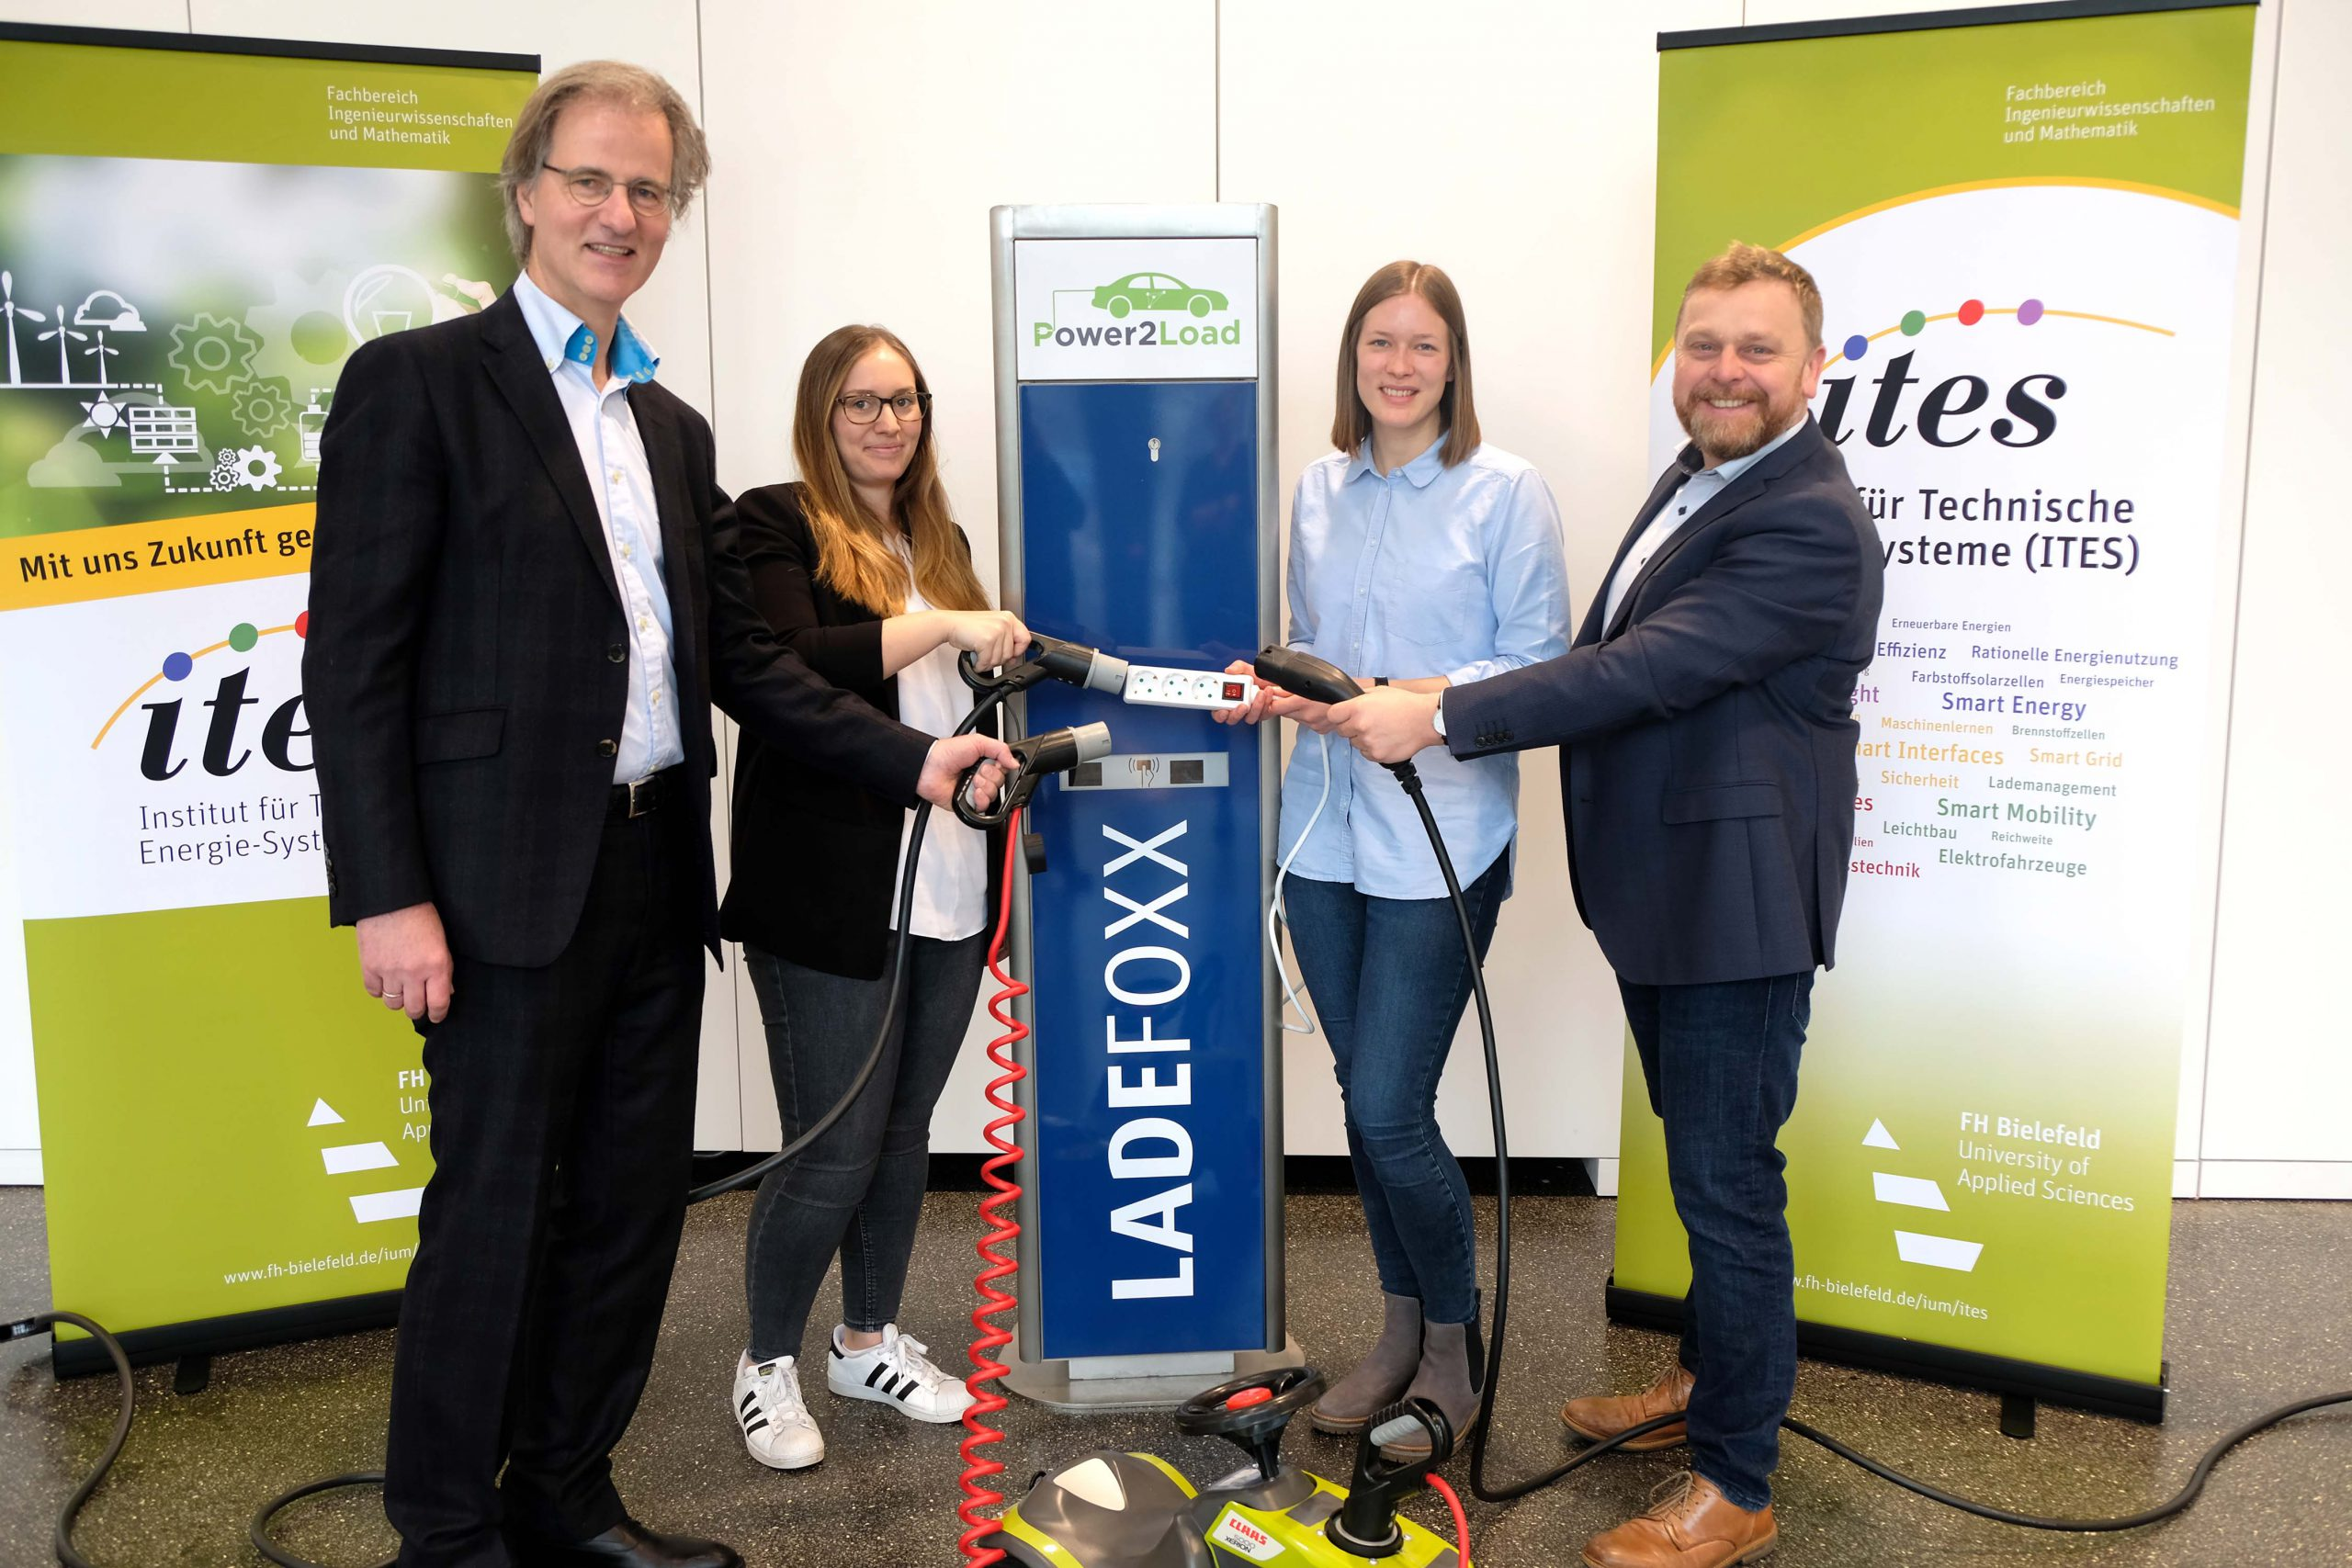 Die Projektpartner von Power2Load: Dr. Peter Westerbarkey (Westaflex GmbH), Julia Eberharter (Archimedes Technik GmbH), Katrin Schulte (FH Bielefeld) und Prof. Dr.-Ing. Jens Haubrock (FH Bielefeld) (v.l.n.r.).